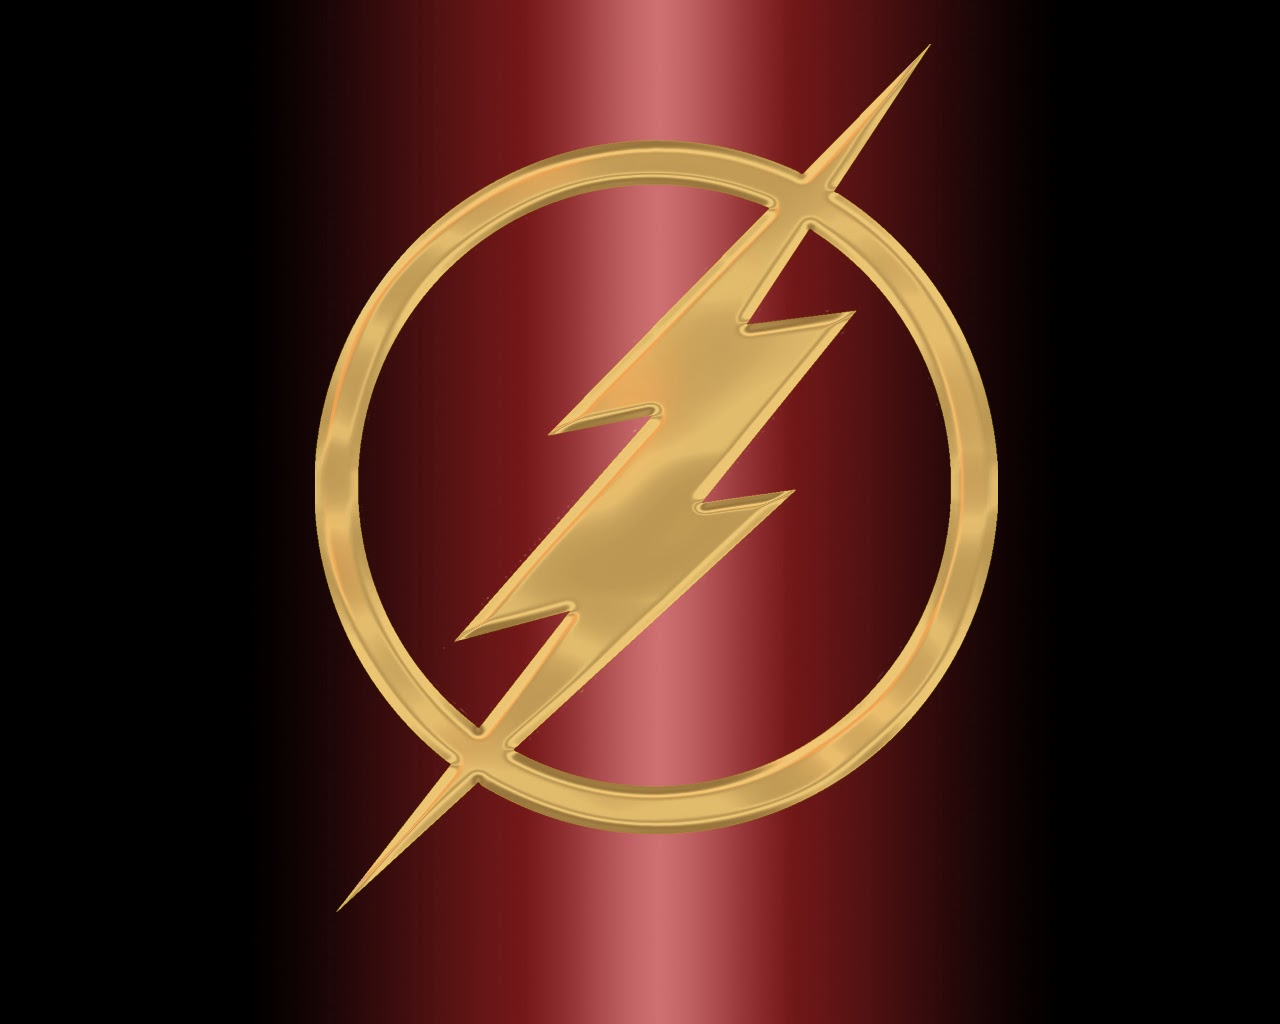 the flash 2 logo